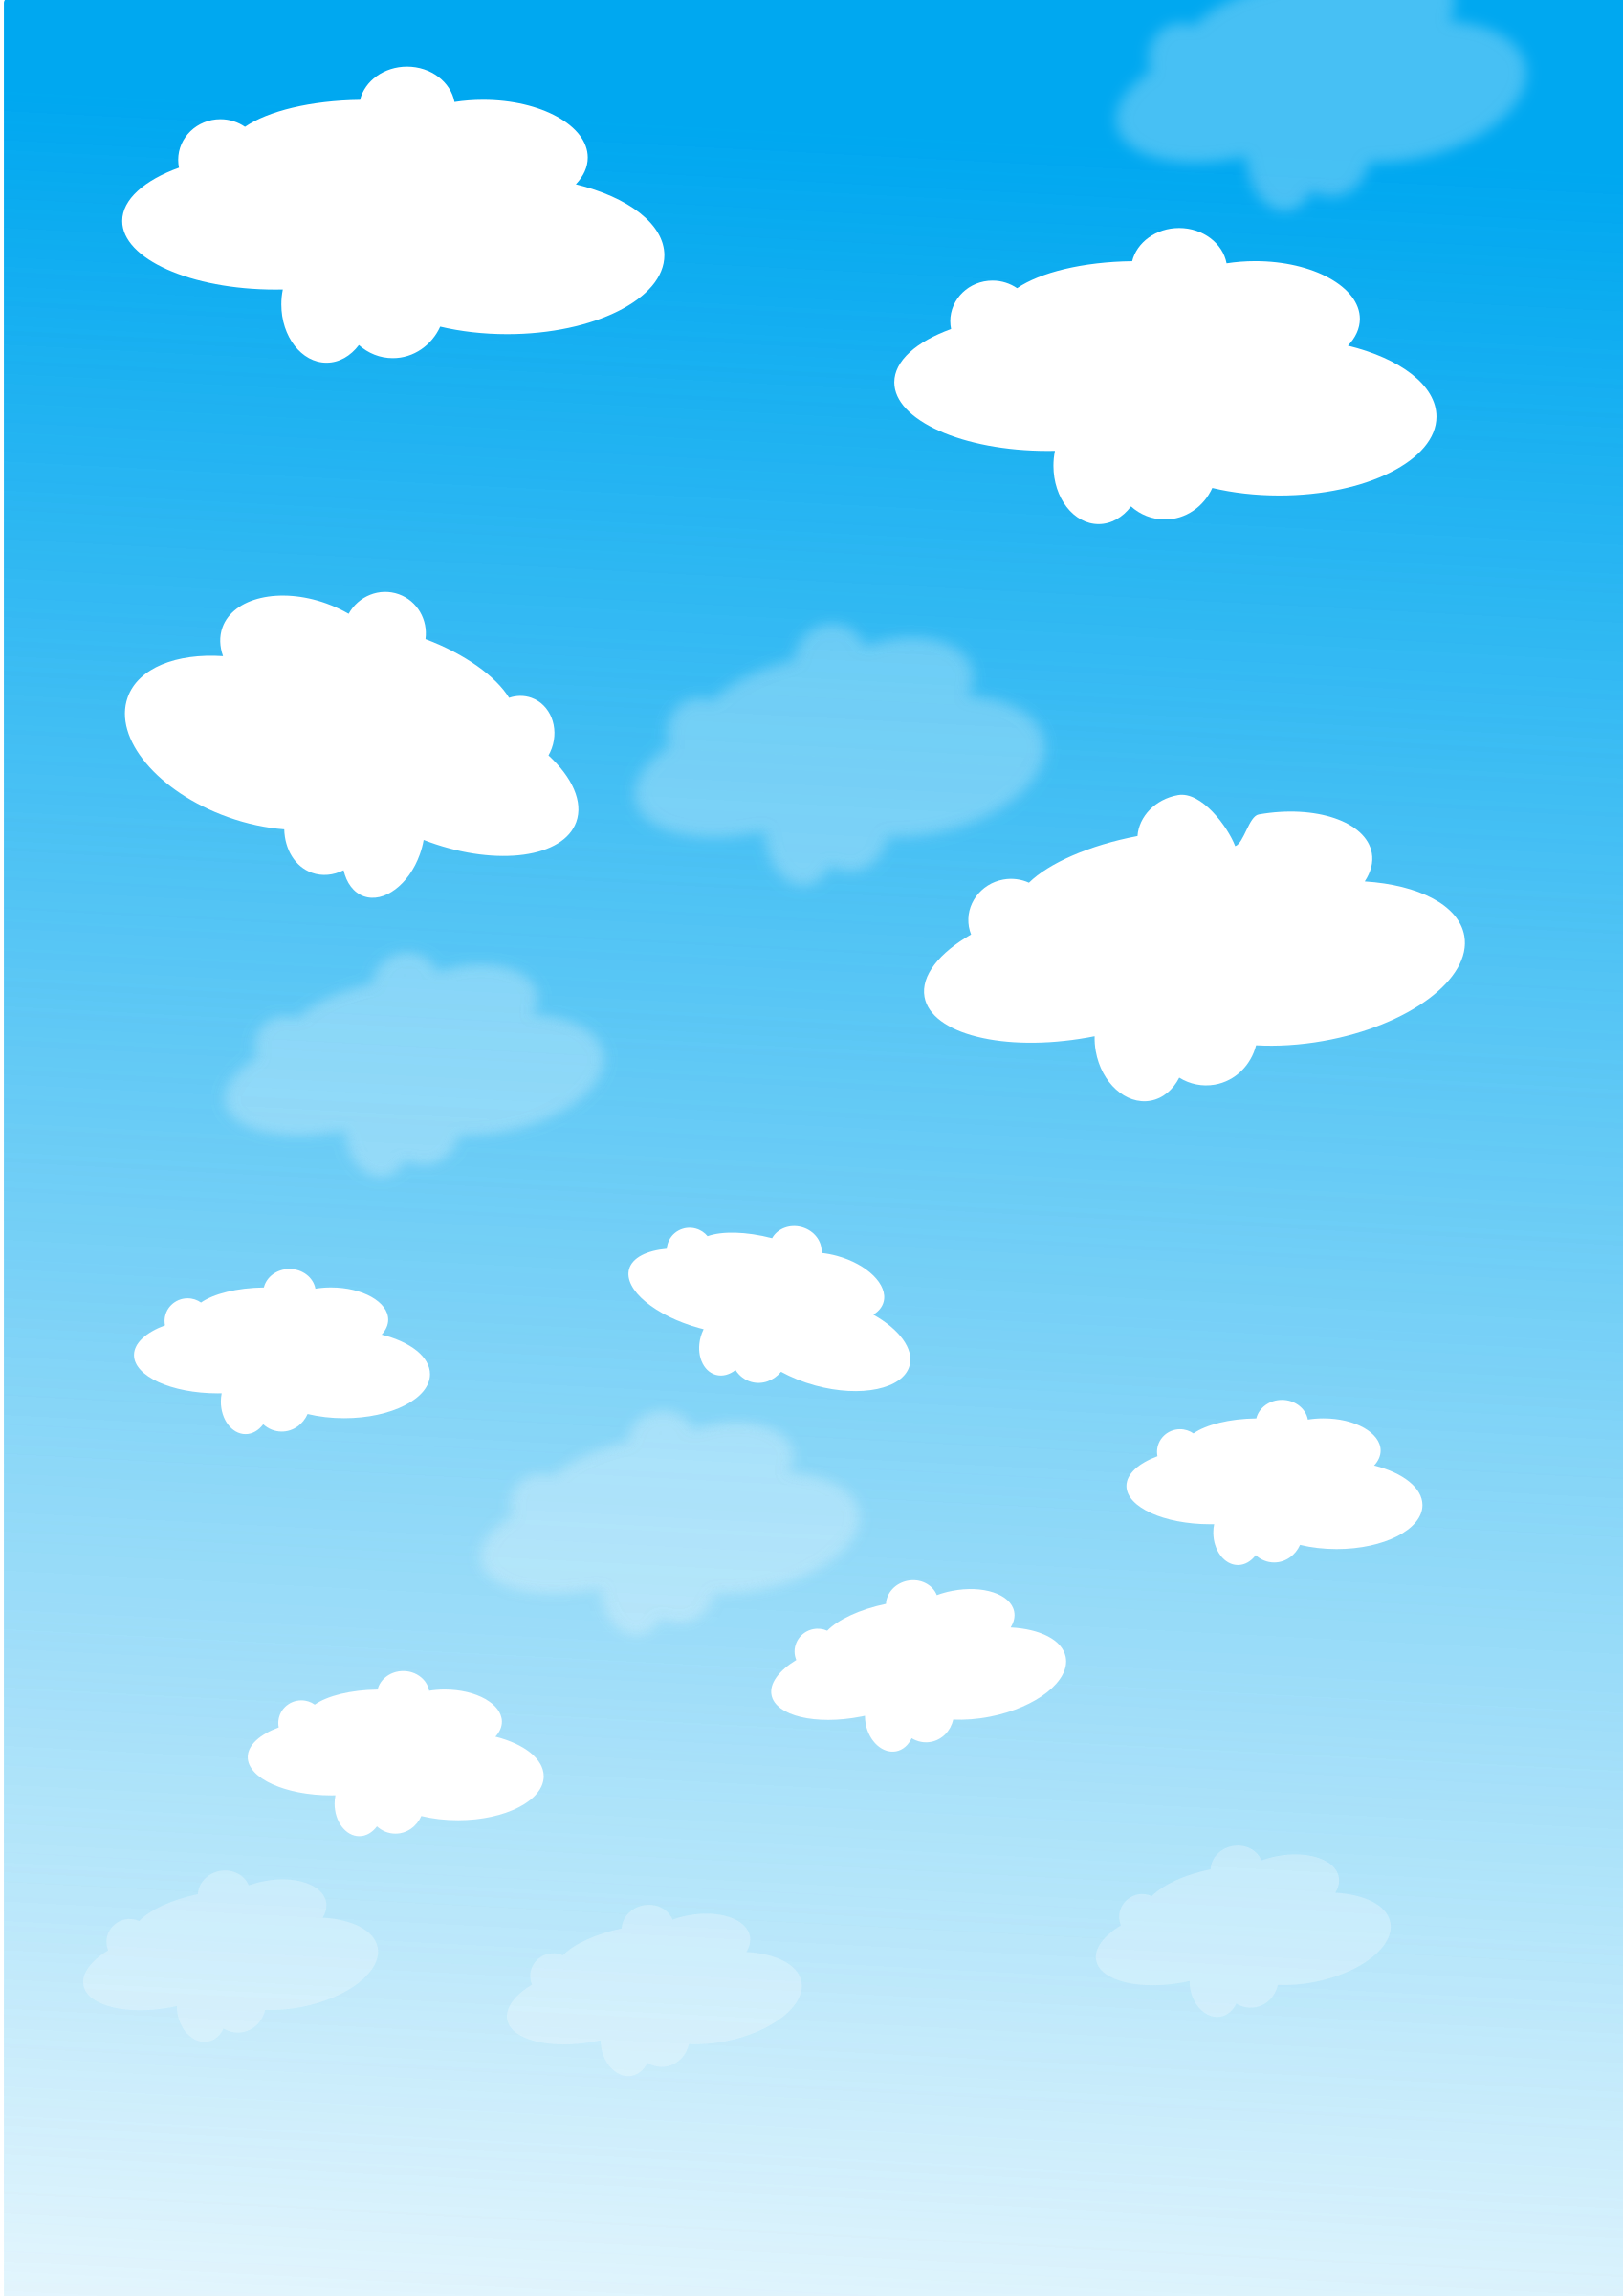 image free stock With clouds big image. Sky clipart.